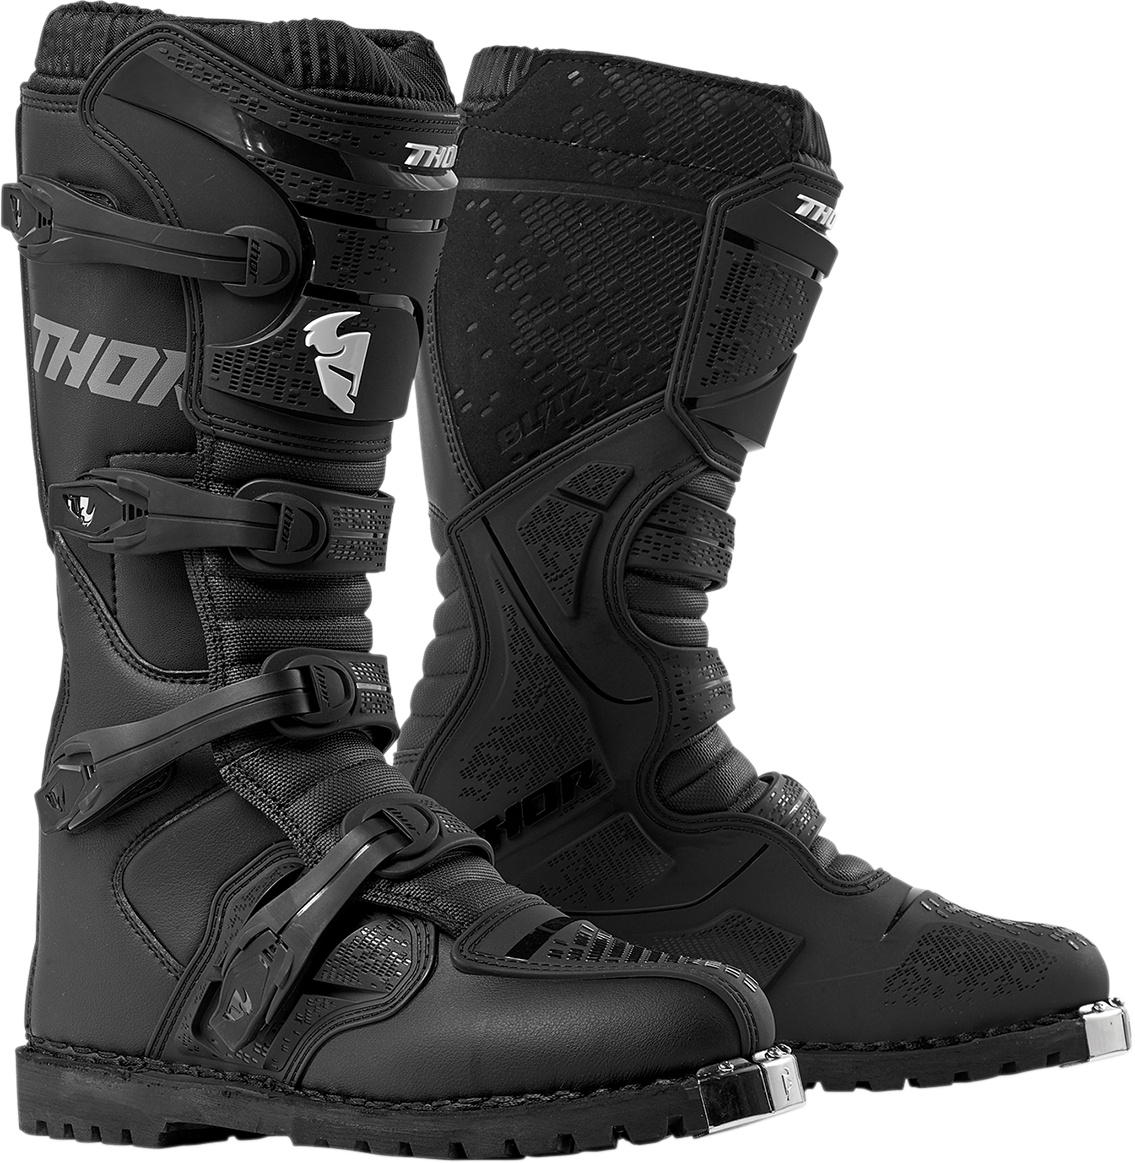 Thor Mens Pair Black Textile Blitz XP Atv Riding Offroad Racing Boots